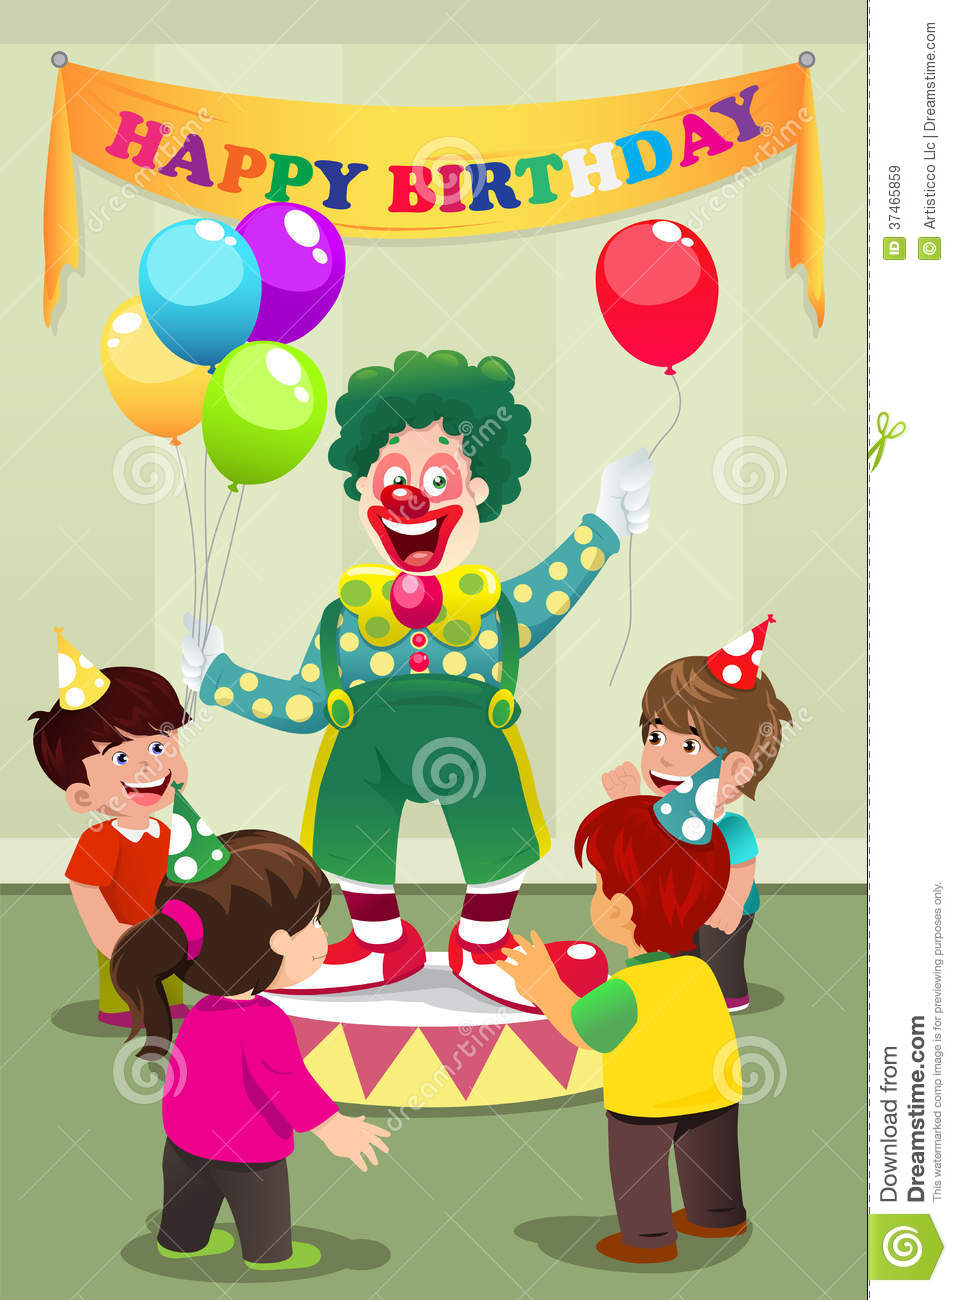 Clown Carrying Balloons To Kids Birthday Party Royalty Free Stock Images Image 37465859